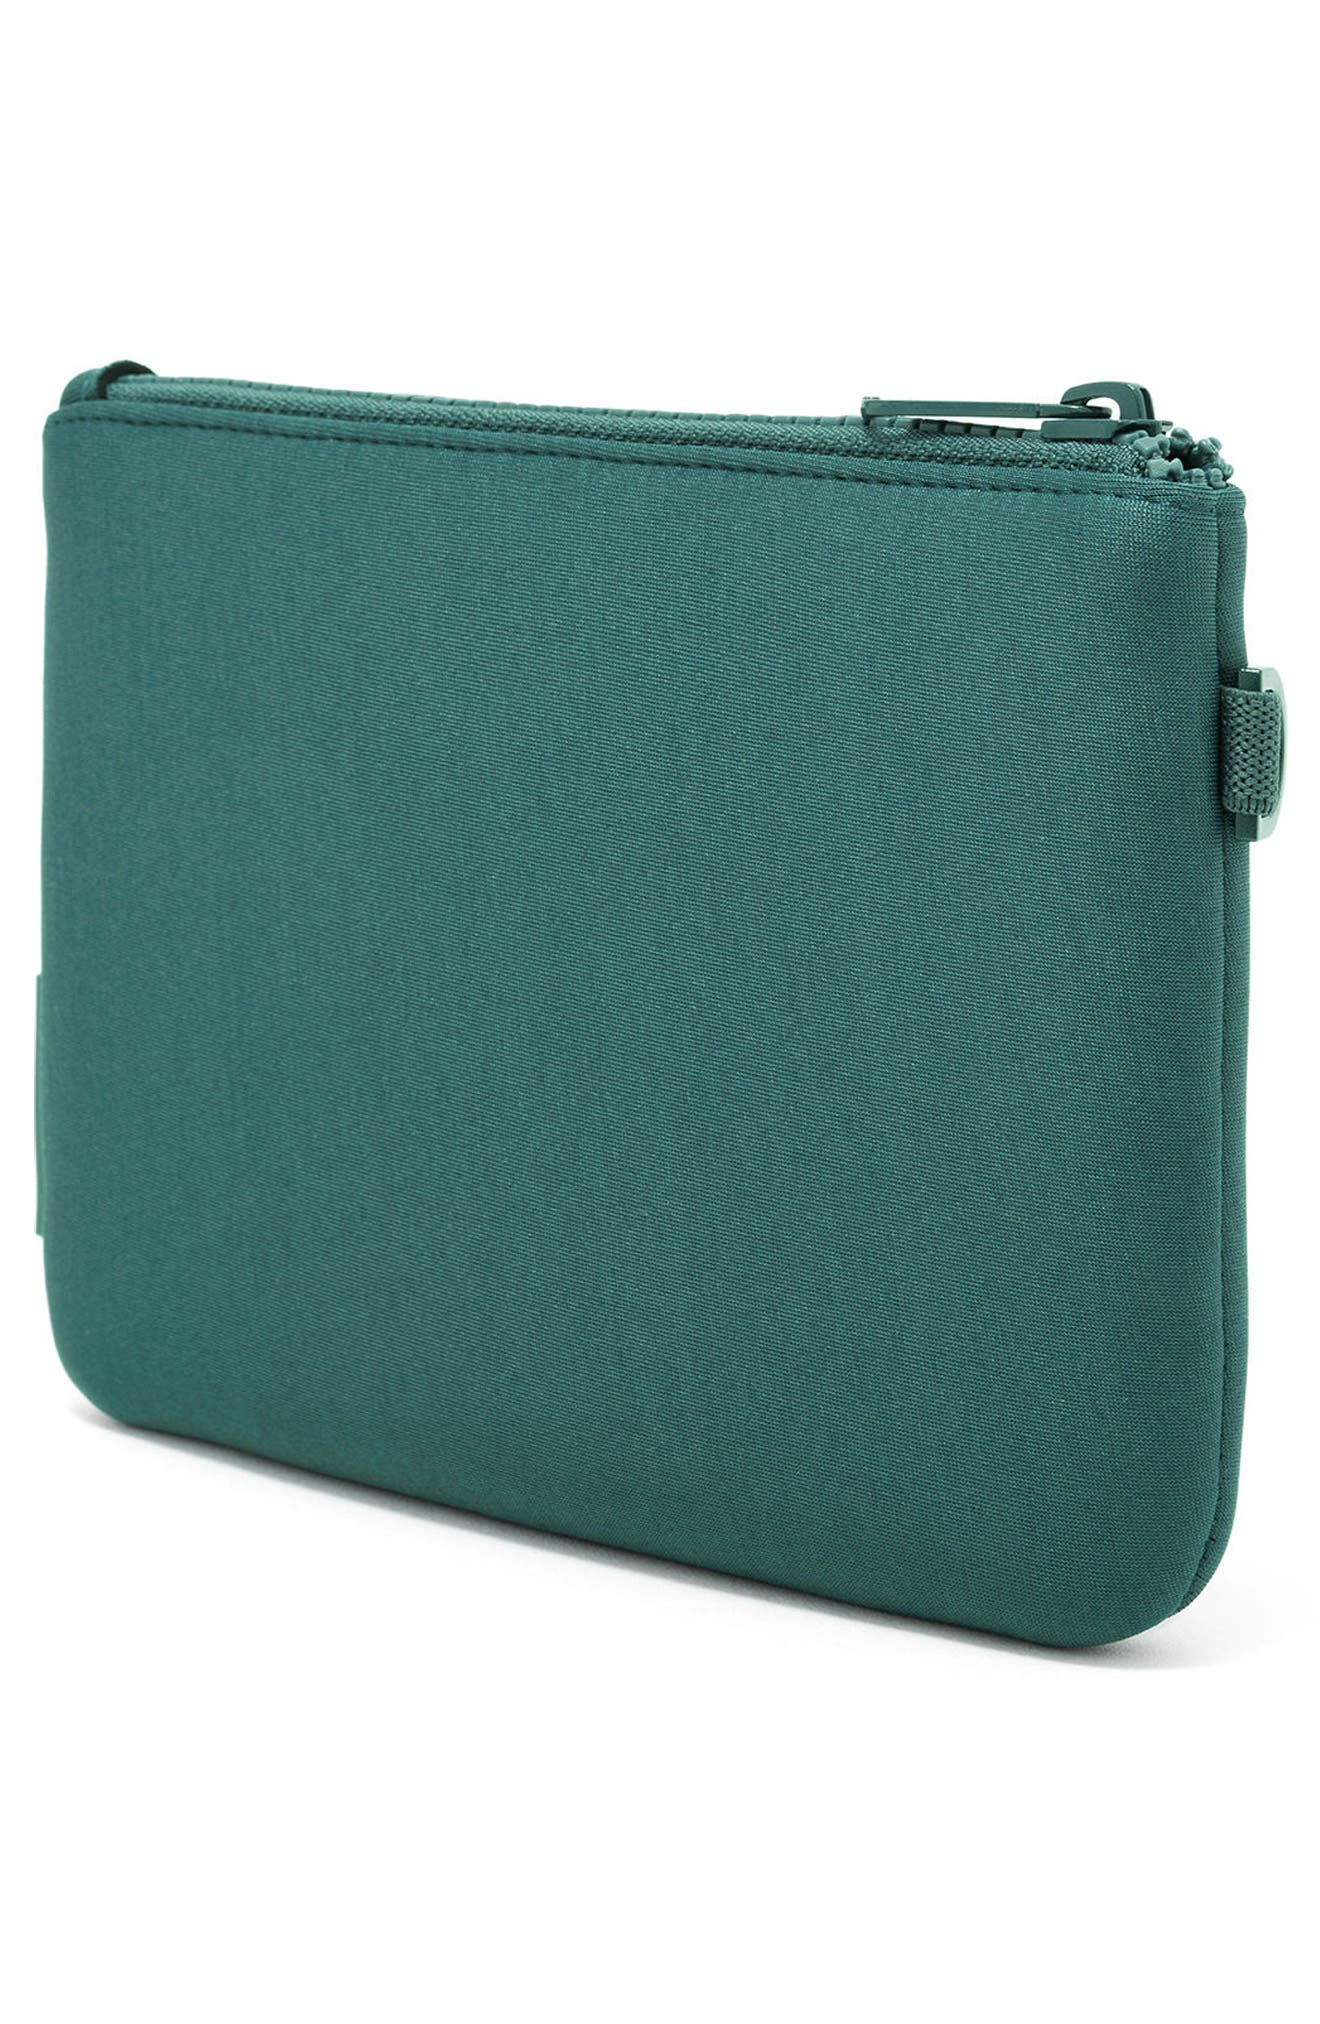 Scout Small Zip Top Pouch,                             Alternate thumbnail 4, color,                             Palm